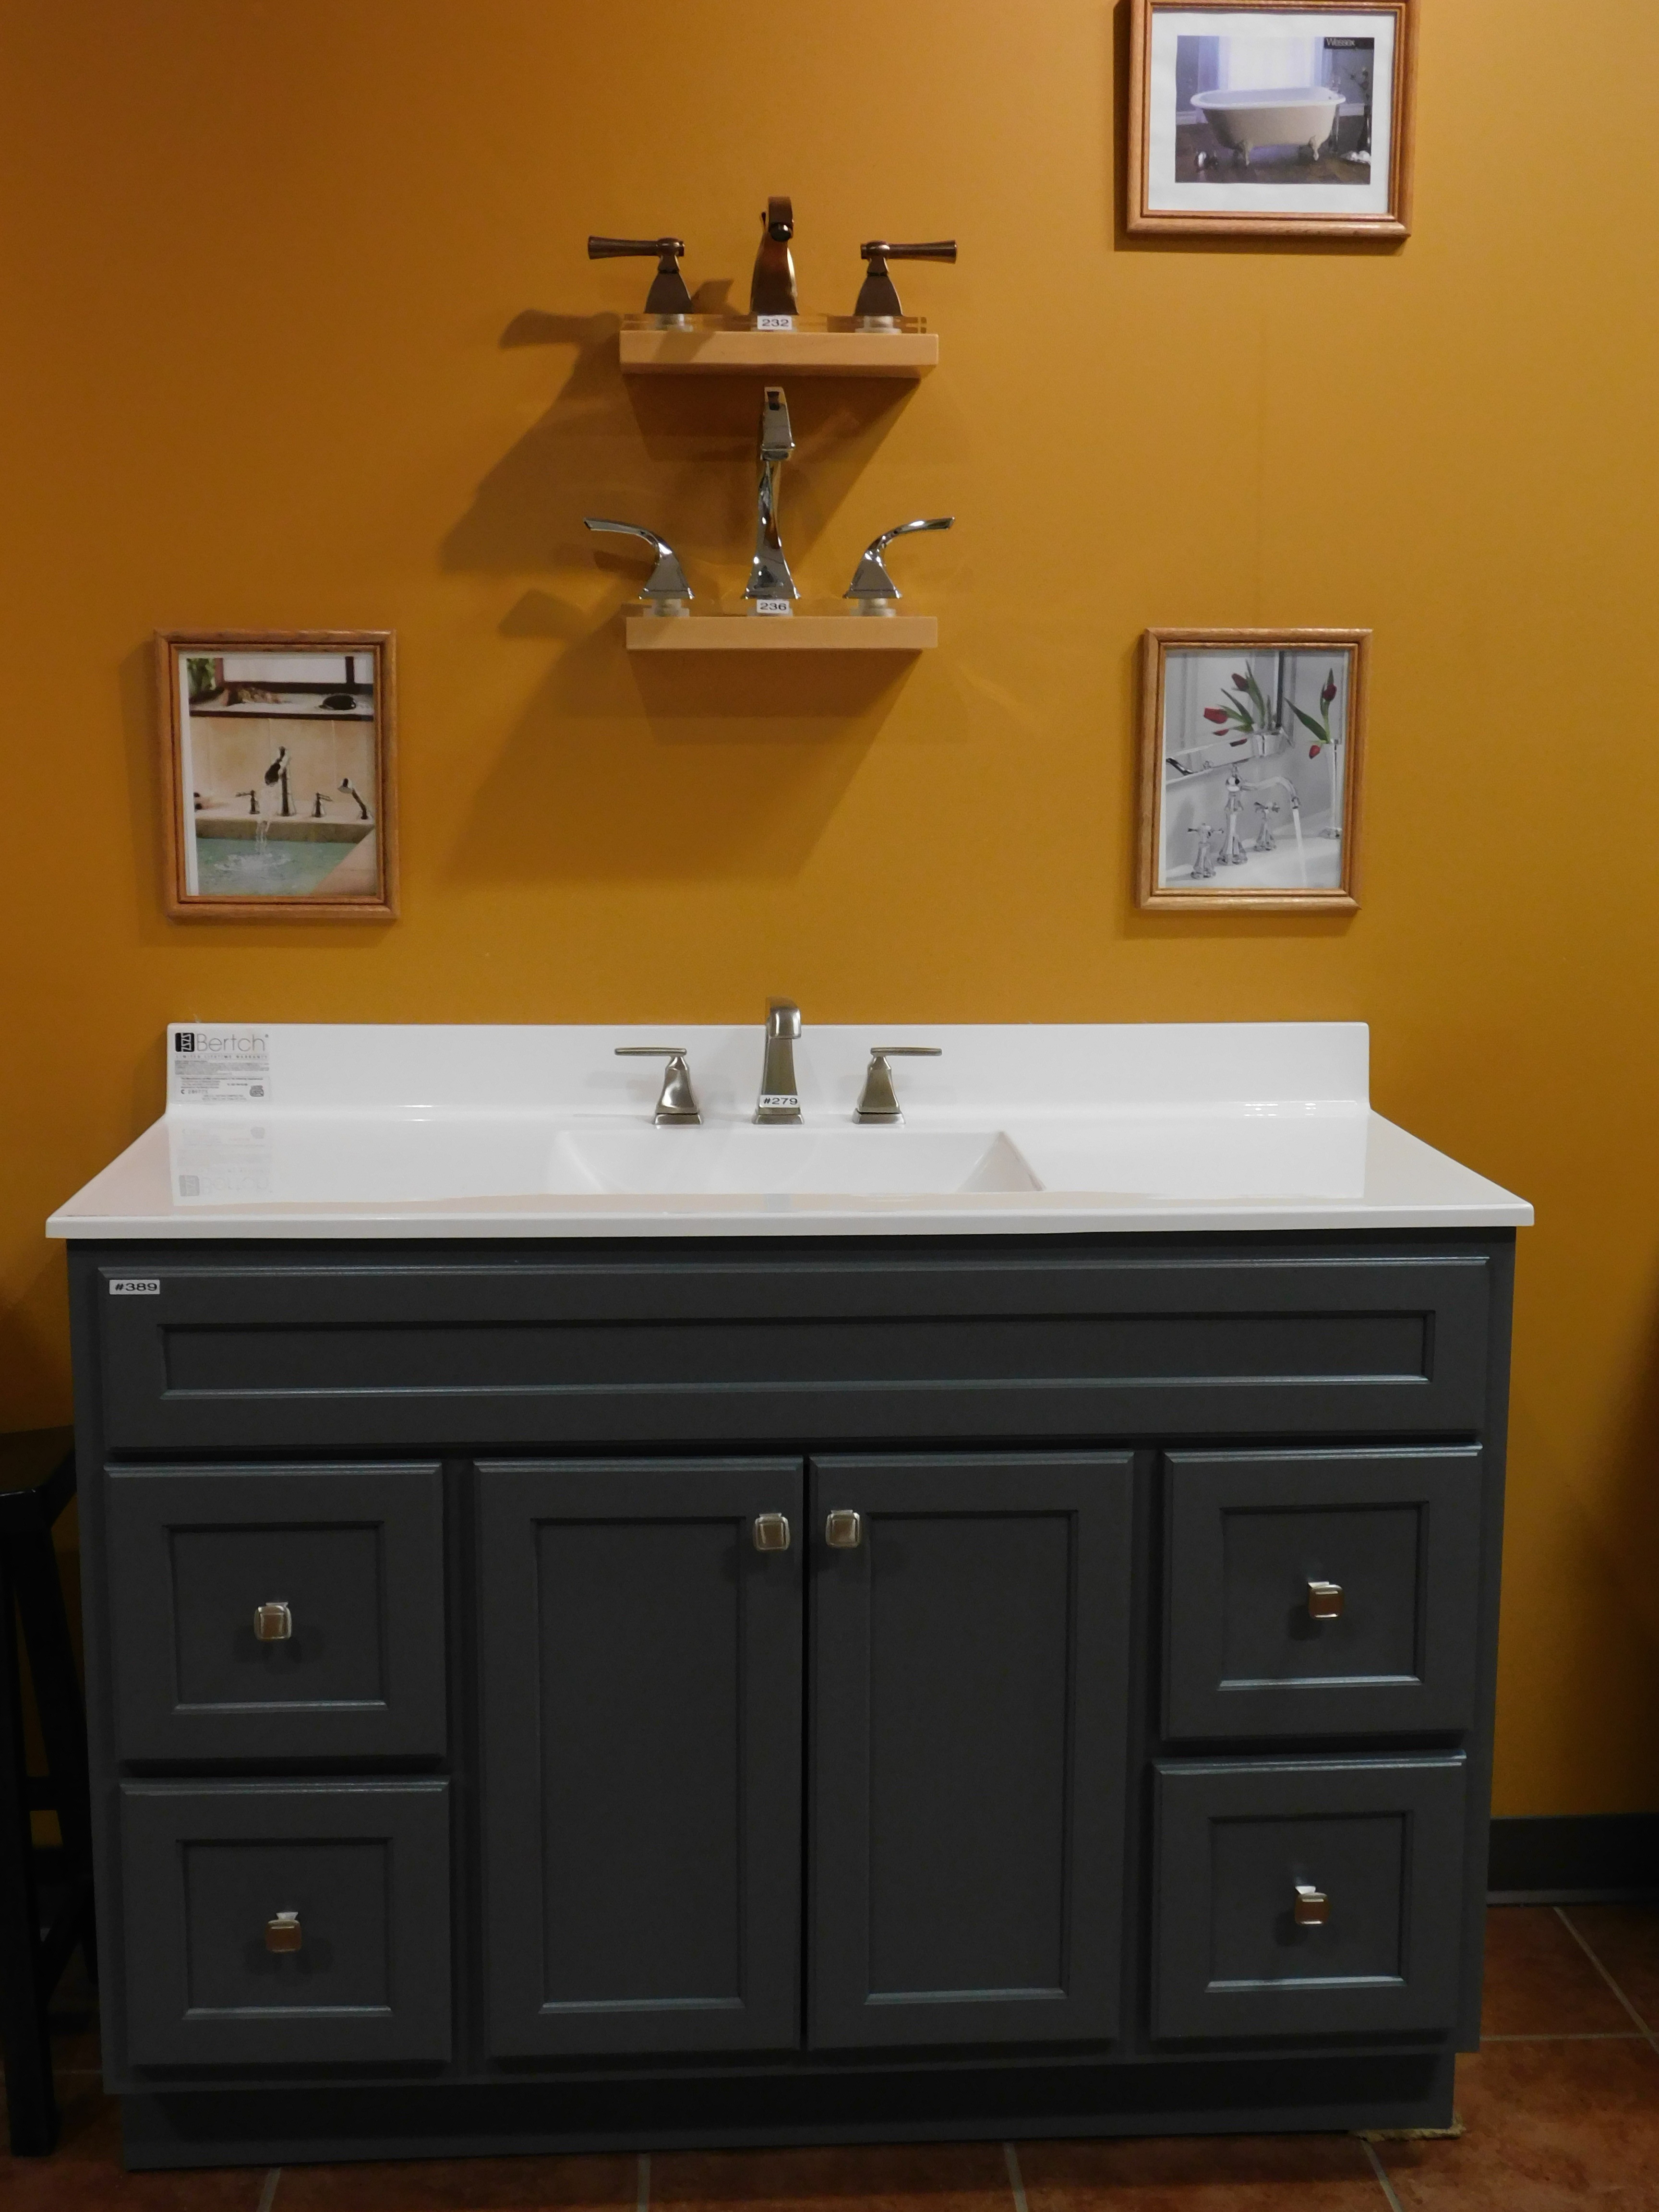 kohler drawers desigining double custom ikea with cabinets full plumbing bath sink bertch depot base superb fancy vanities of size ferguson enrapture home inch stylish as tops vanity floating massachusetts canada interior lights semi and bathroom